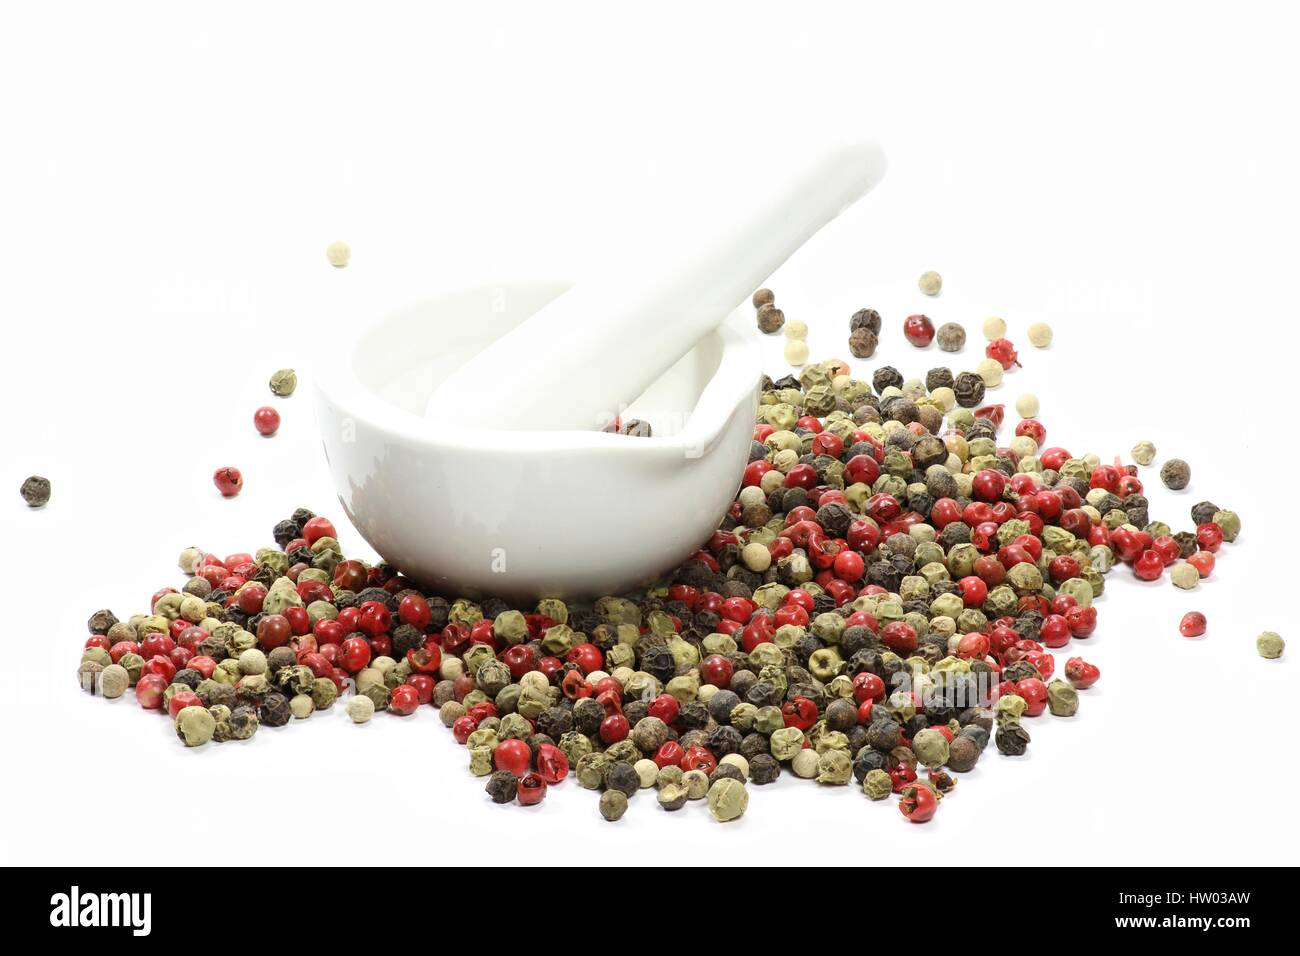 mixed peppercorns with a ceramic mortar isolated on white background - Stock Image